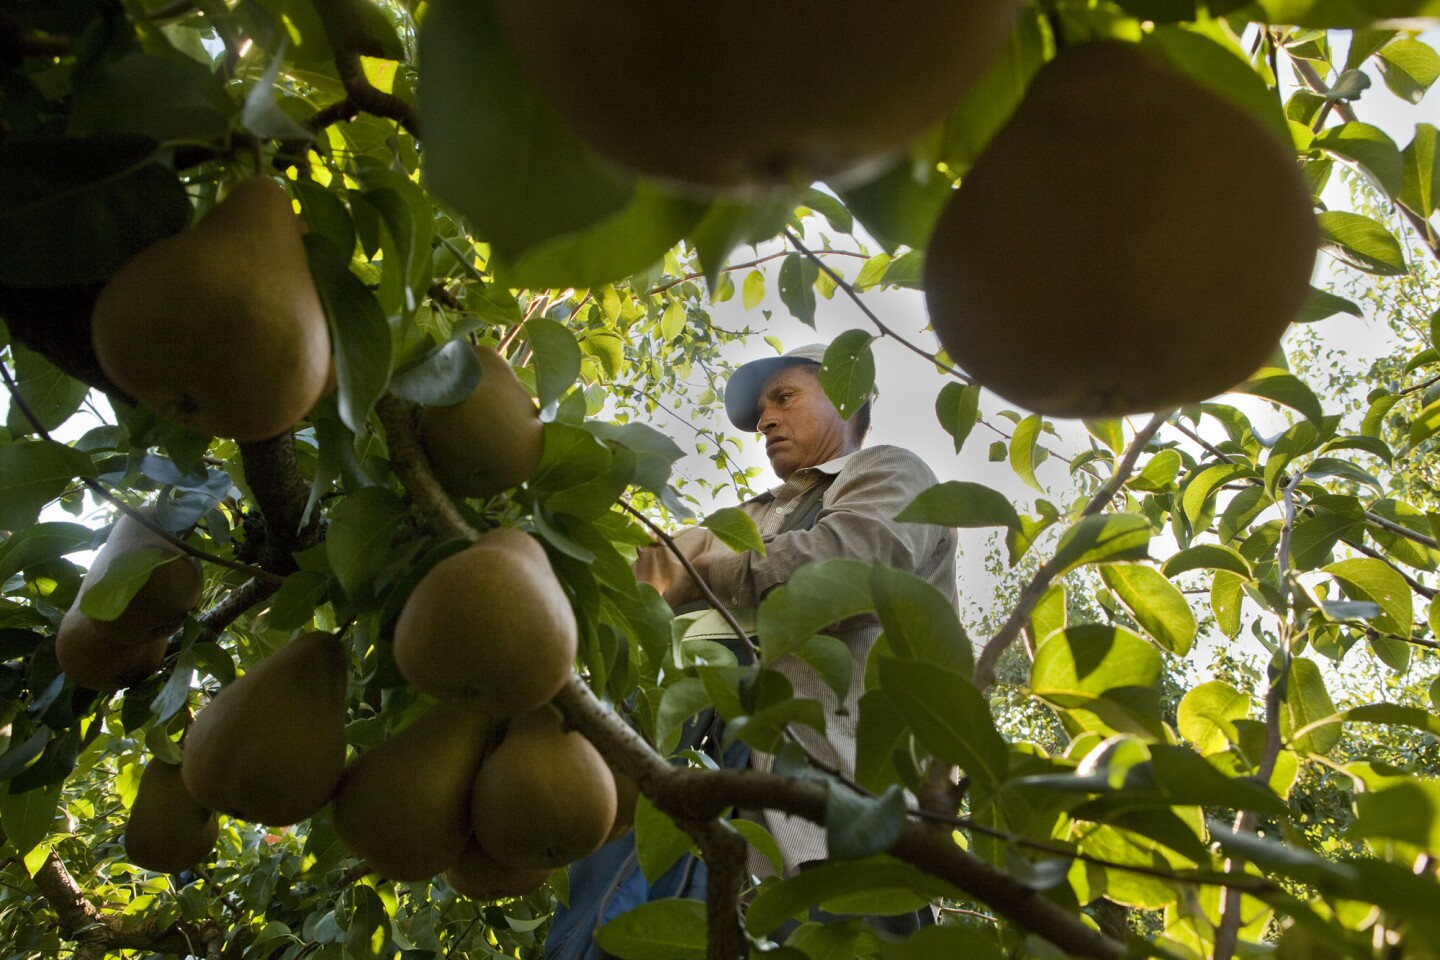 Balancing on a ladder, a picker works the tops of pear trees early in the morning on a Grand Island orchard.